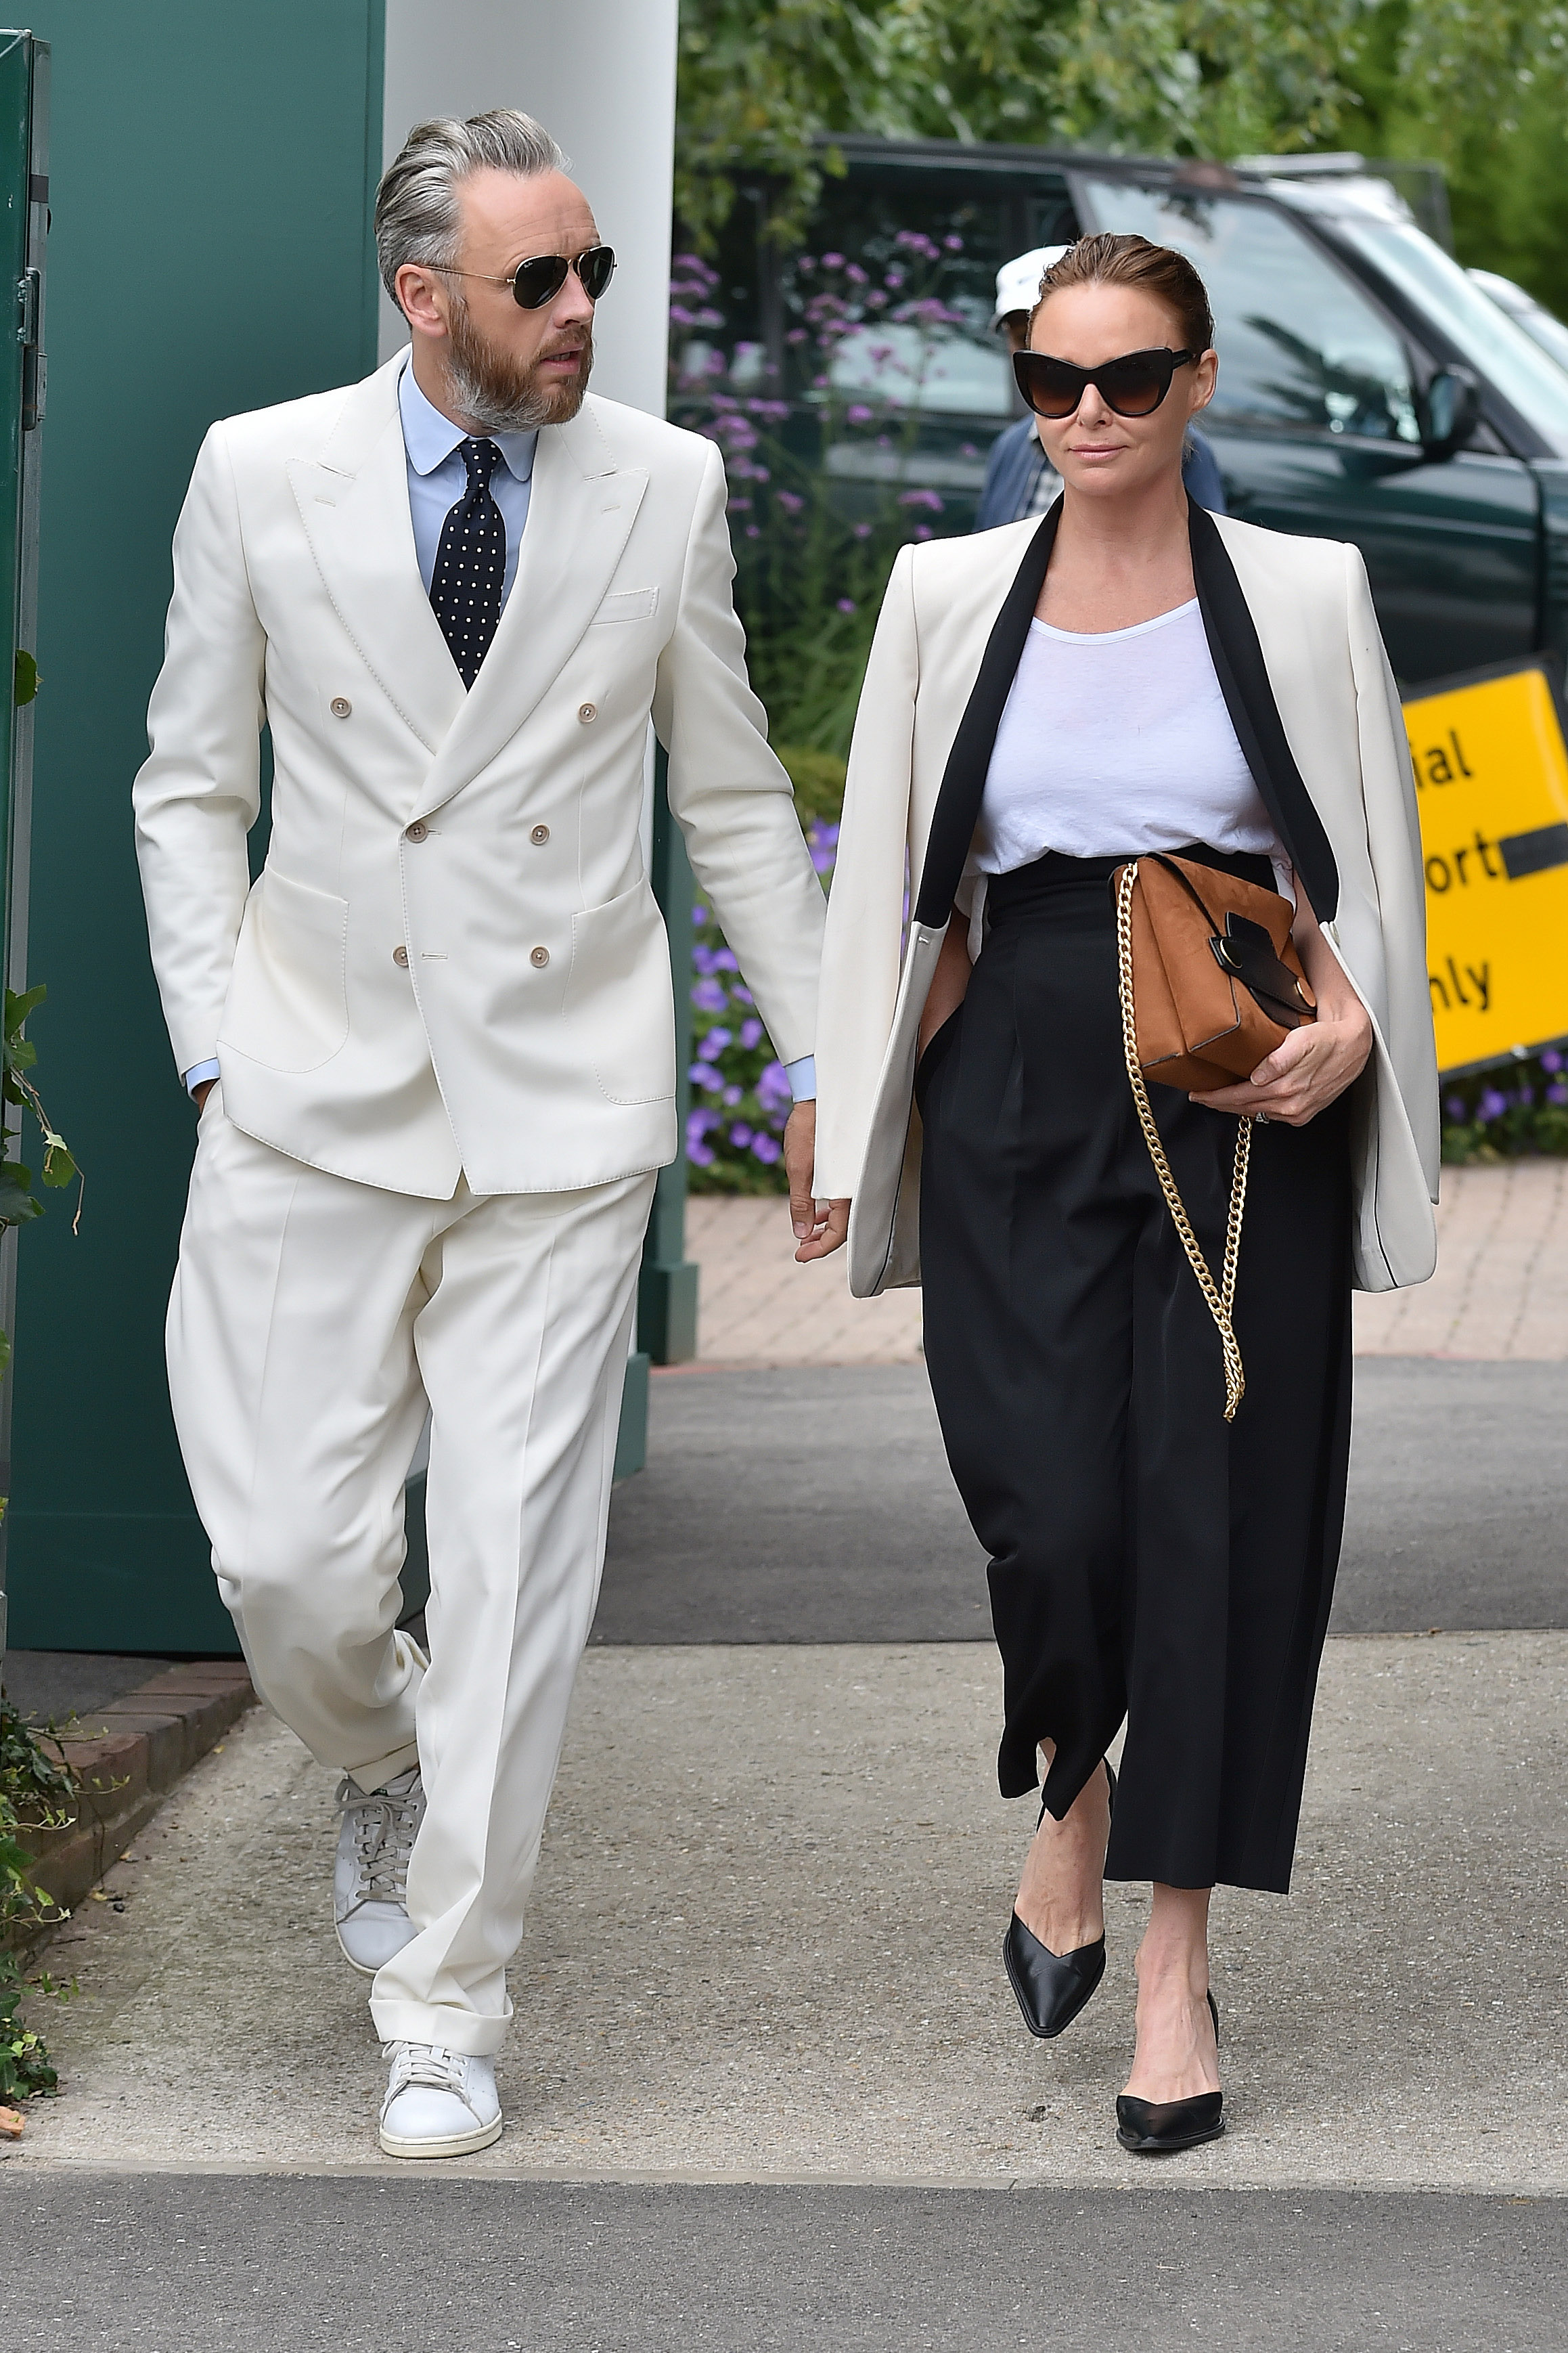 "<p><a href=""https://style.nine.com.au/stella-mccartney"" target=""_blank"" draggable=""false"">Designer Stella McCartney</a> and her husband, Alashdair Willis, solidified their status as a couple with serious sartorial flair at <a href=""https://style.nine.com.au/2017/07/17/10/33/style_kate-and-pippa-wimbledon-style"" target=""_blank"" draggable=""false"">Wimbledon last week </a>in matching his-and-her suits.</p> <p>Stella's take on the power suit saw her pair a monochrome blazer and high-waisted black pants of her own design with a casual white t-shirt and caramel-coloured clutch.</p> <p>Her publisher husband matched his wife's style status in a crisp, white double-breasted suit with a pair of white sneakers adding a casual element to the look.</p> <p>The couple's co-coordinating attire was a modern and innovative twist on classic Wimbledon whites and proved that a suit isn't just exclusive to red carpets or the boardroom.</p> <p>Whether they're Hollywood superstars, sport stars or fashion industry powerhouses, many style-savvy A-list couples haven't been afraid to make a splash in his-and-her suits.</p> <p>Click through to see the the A-list couples who have suited up in style.</p>"